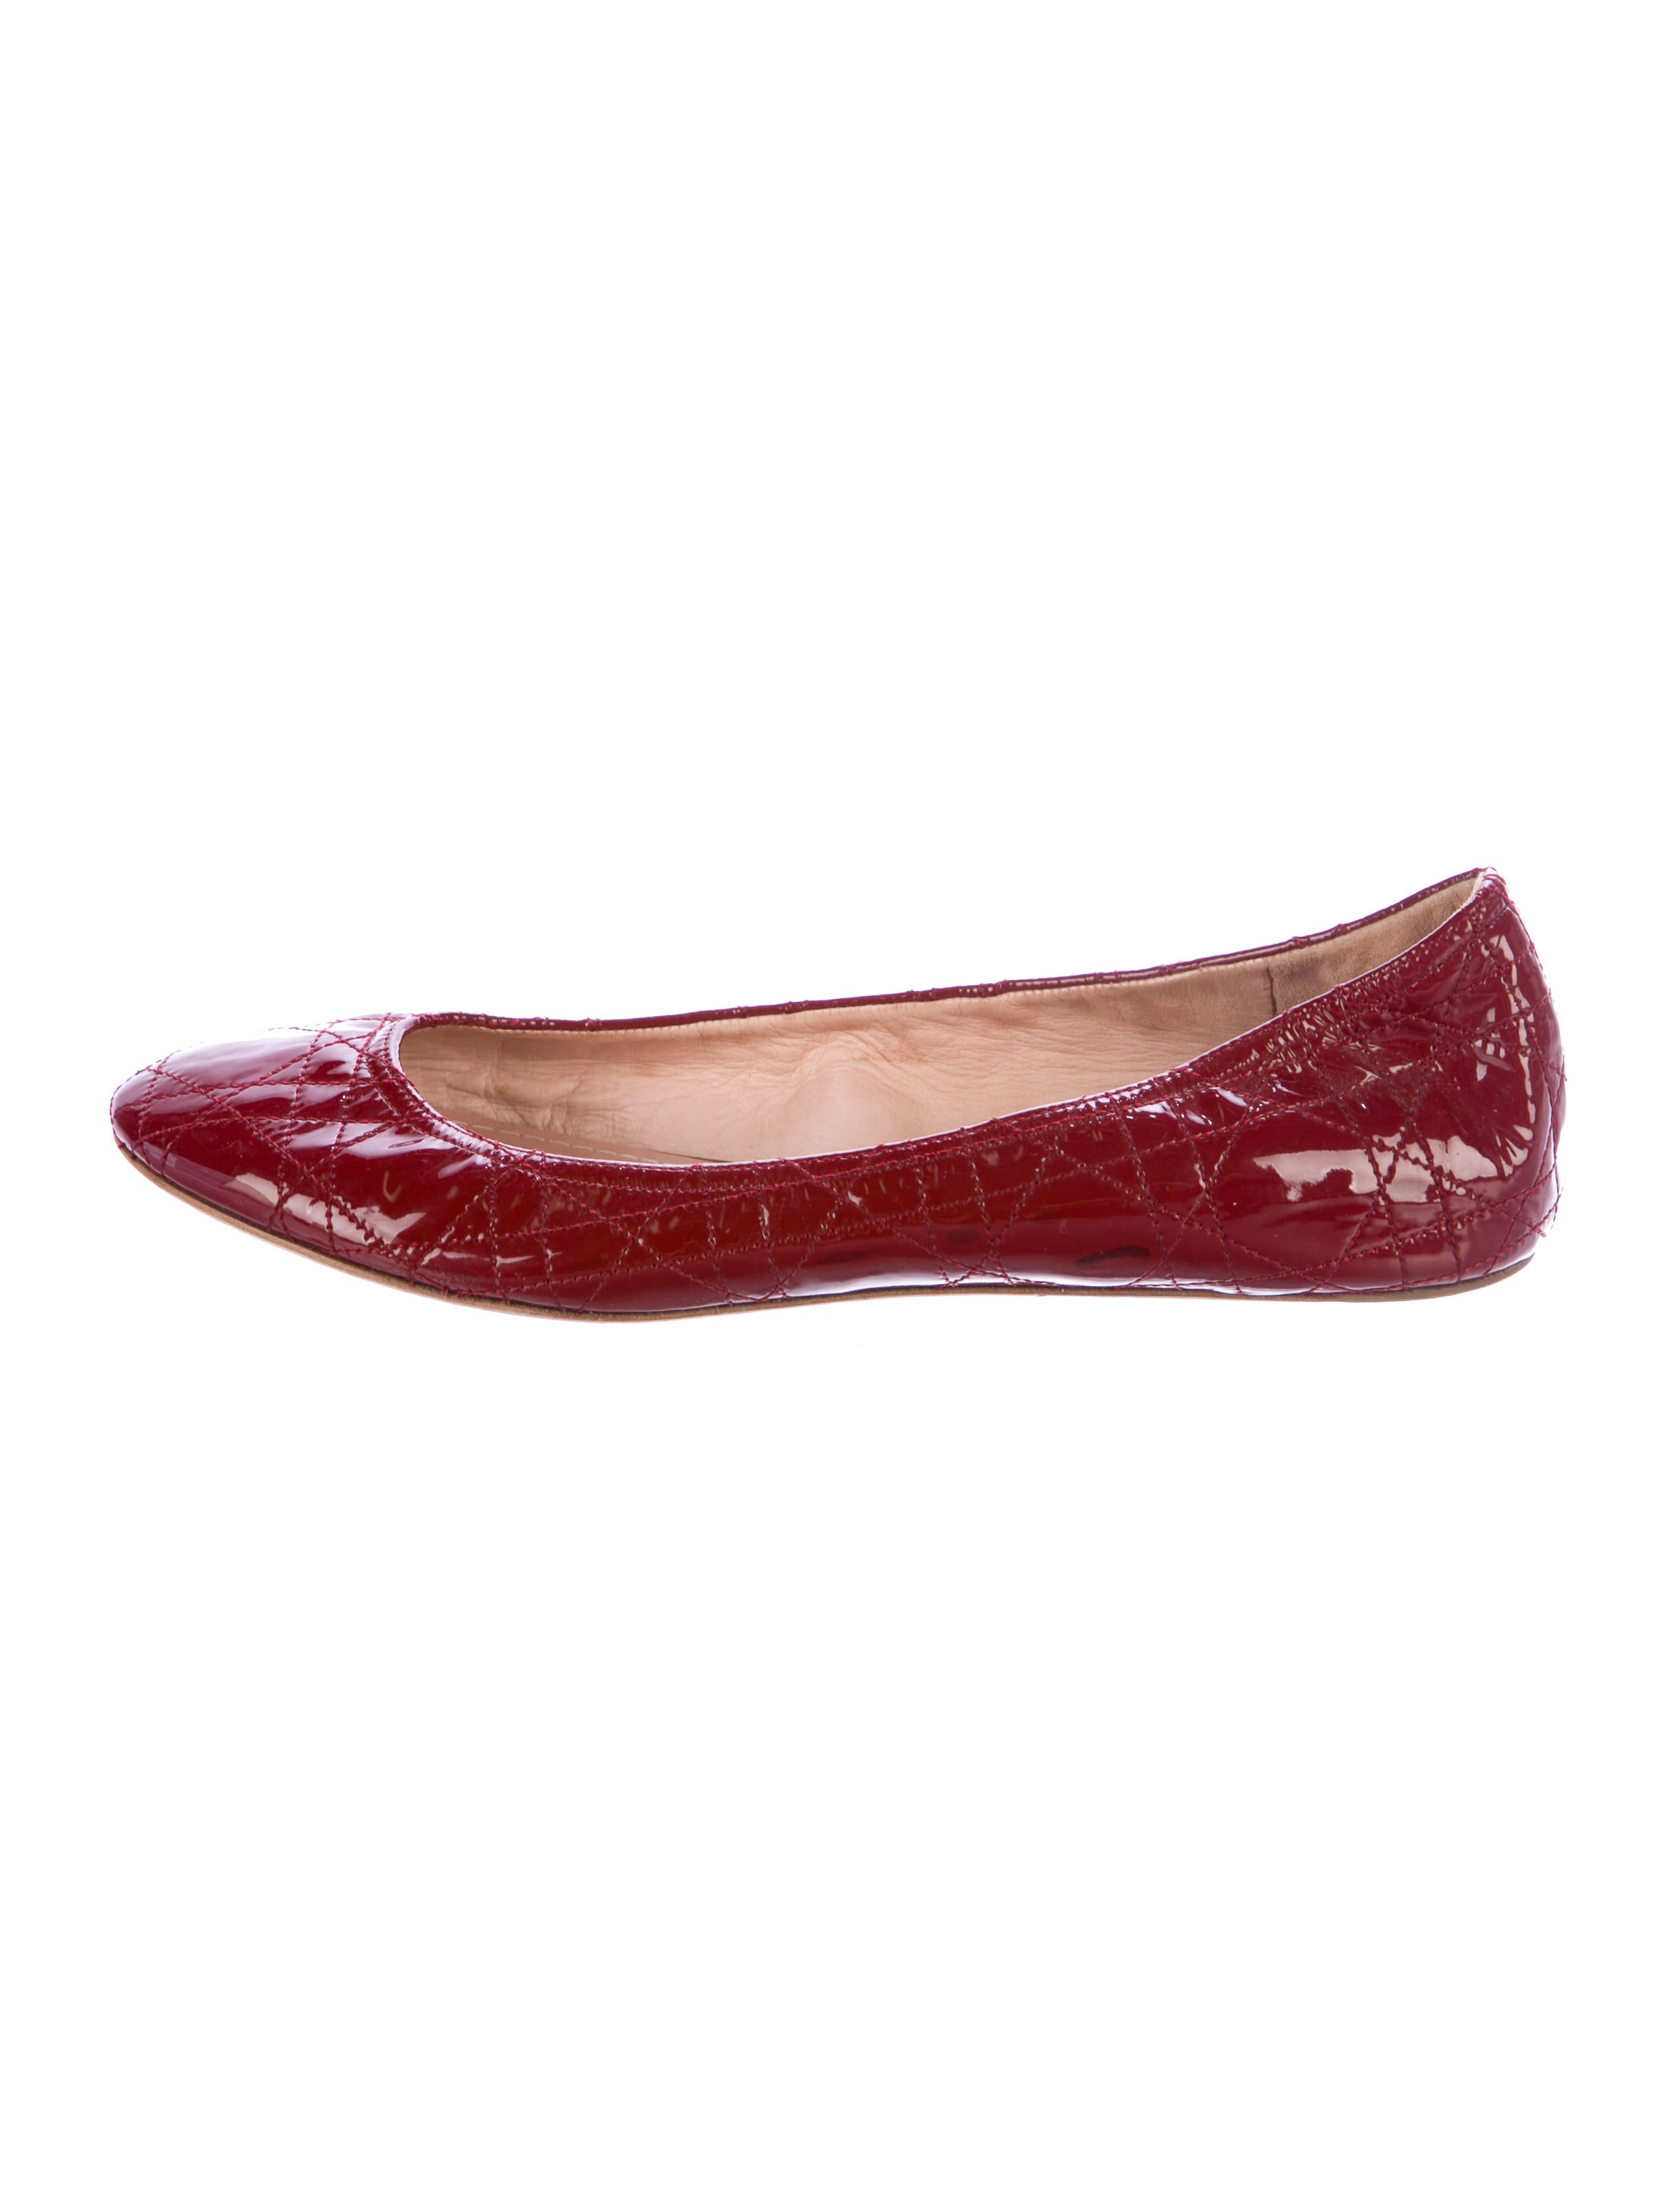 huge surprise online outlet genuine Christian Dior Patent Leather Cannage Flats cheapest price sale online best seller for sale view cheap price WZtHr